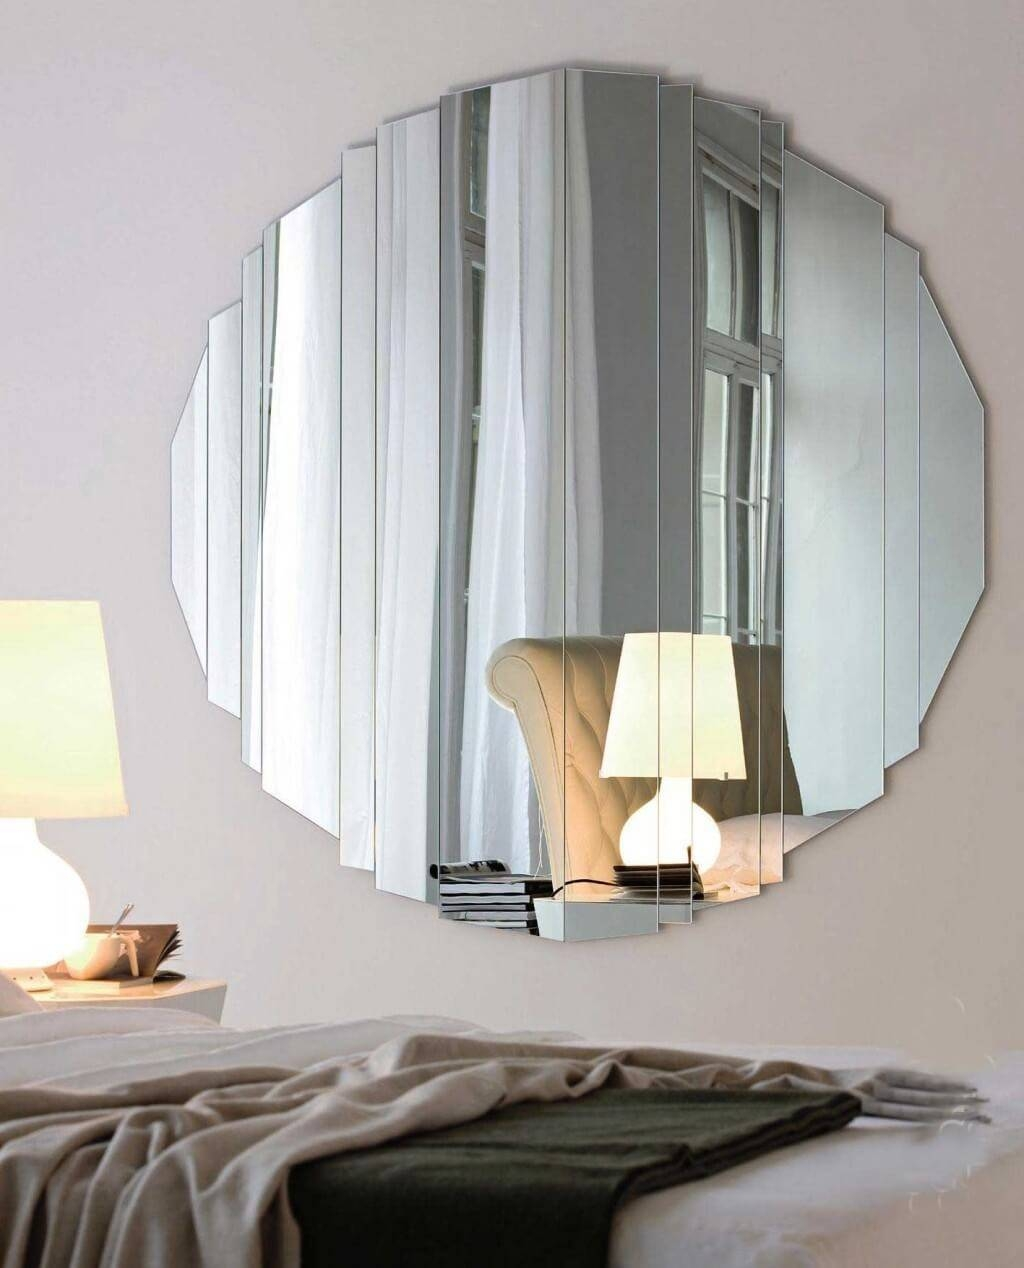 Large Round Mirror Wall Decor : Beauty Round Mirror Wall Decor pertaining to Large Round Mirrors (Image 11 of 25)